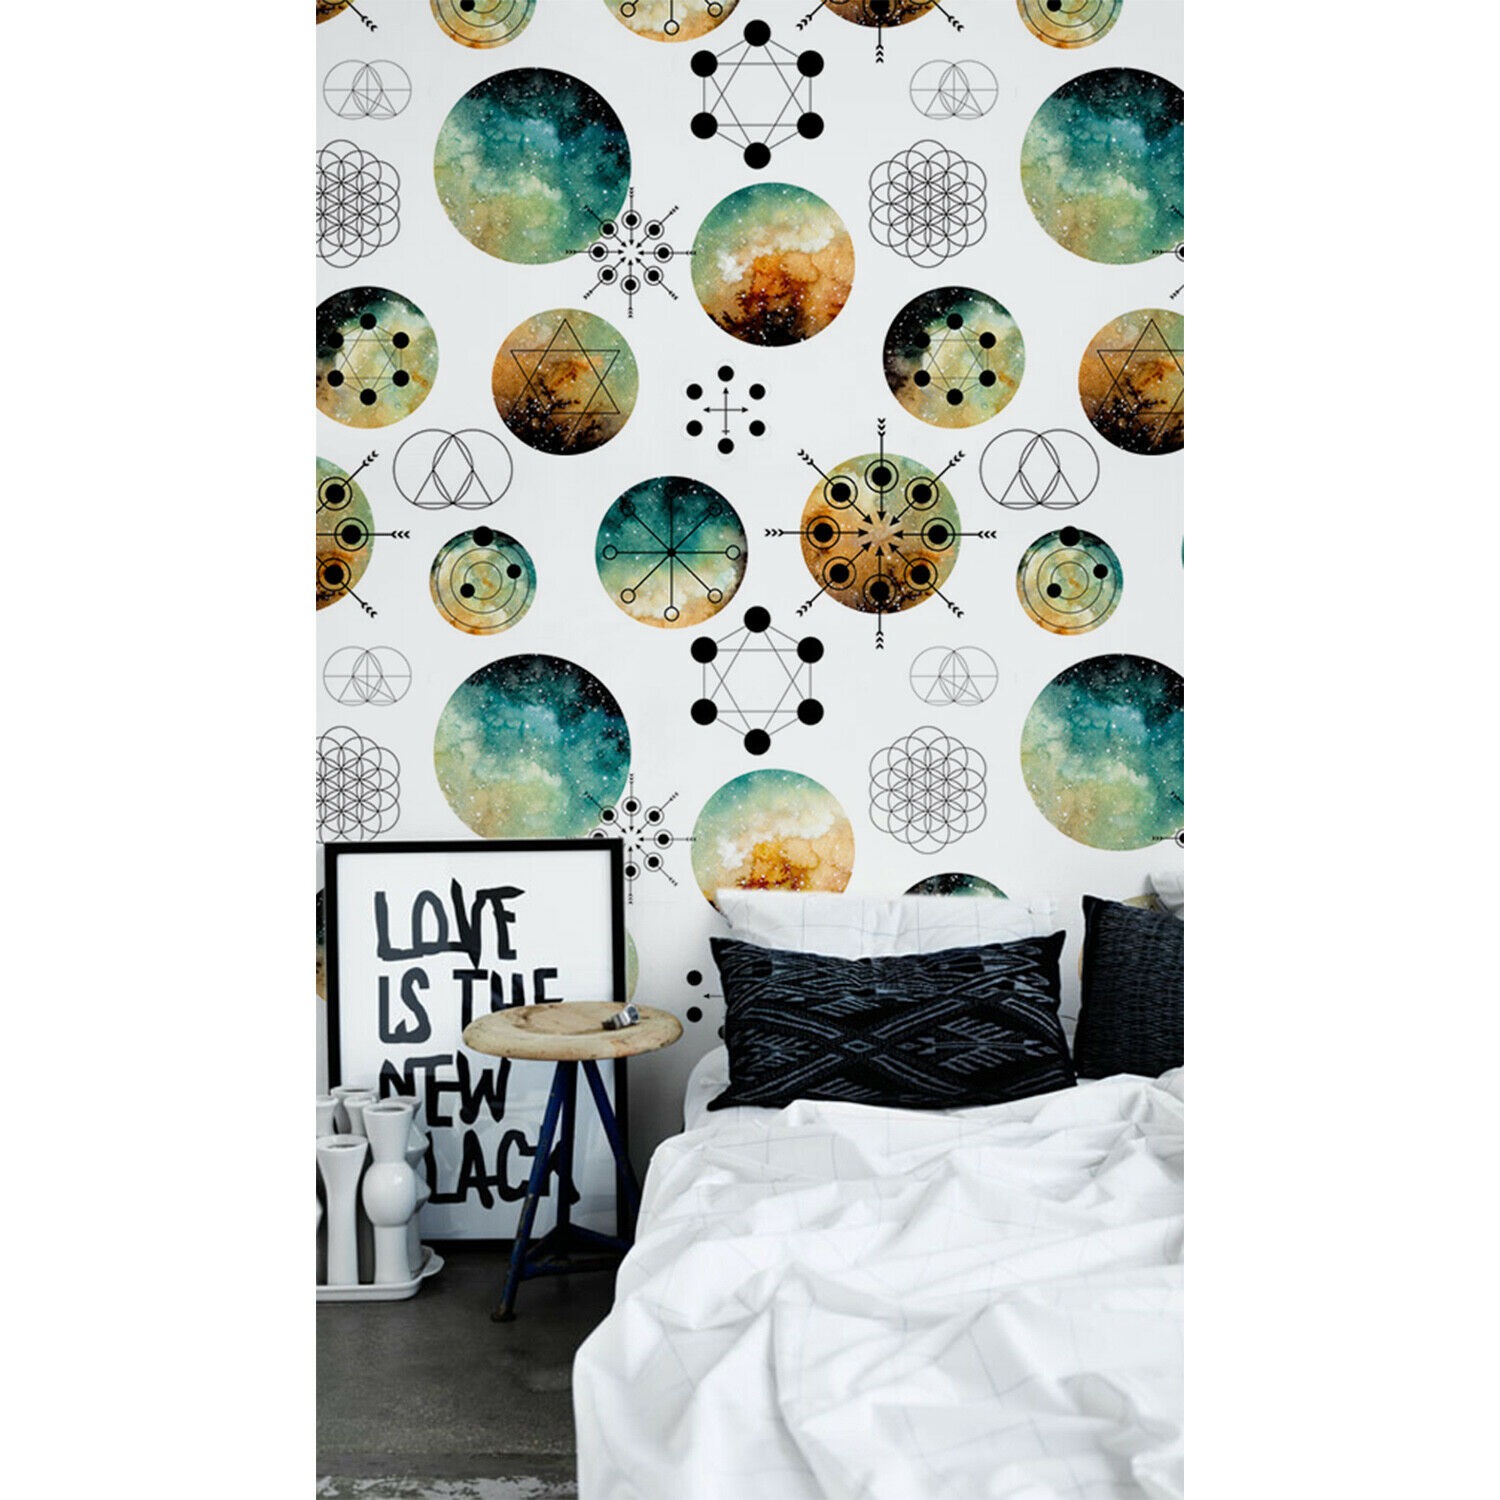 Intergalactic Geometry Non-Woven wallpaper Simple wall mural Scandinavian Home